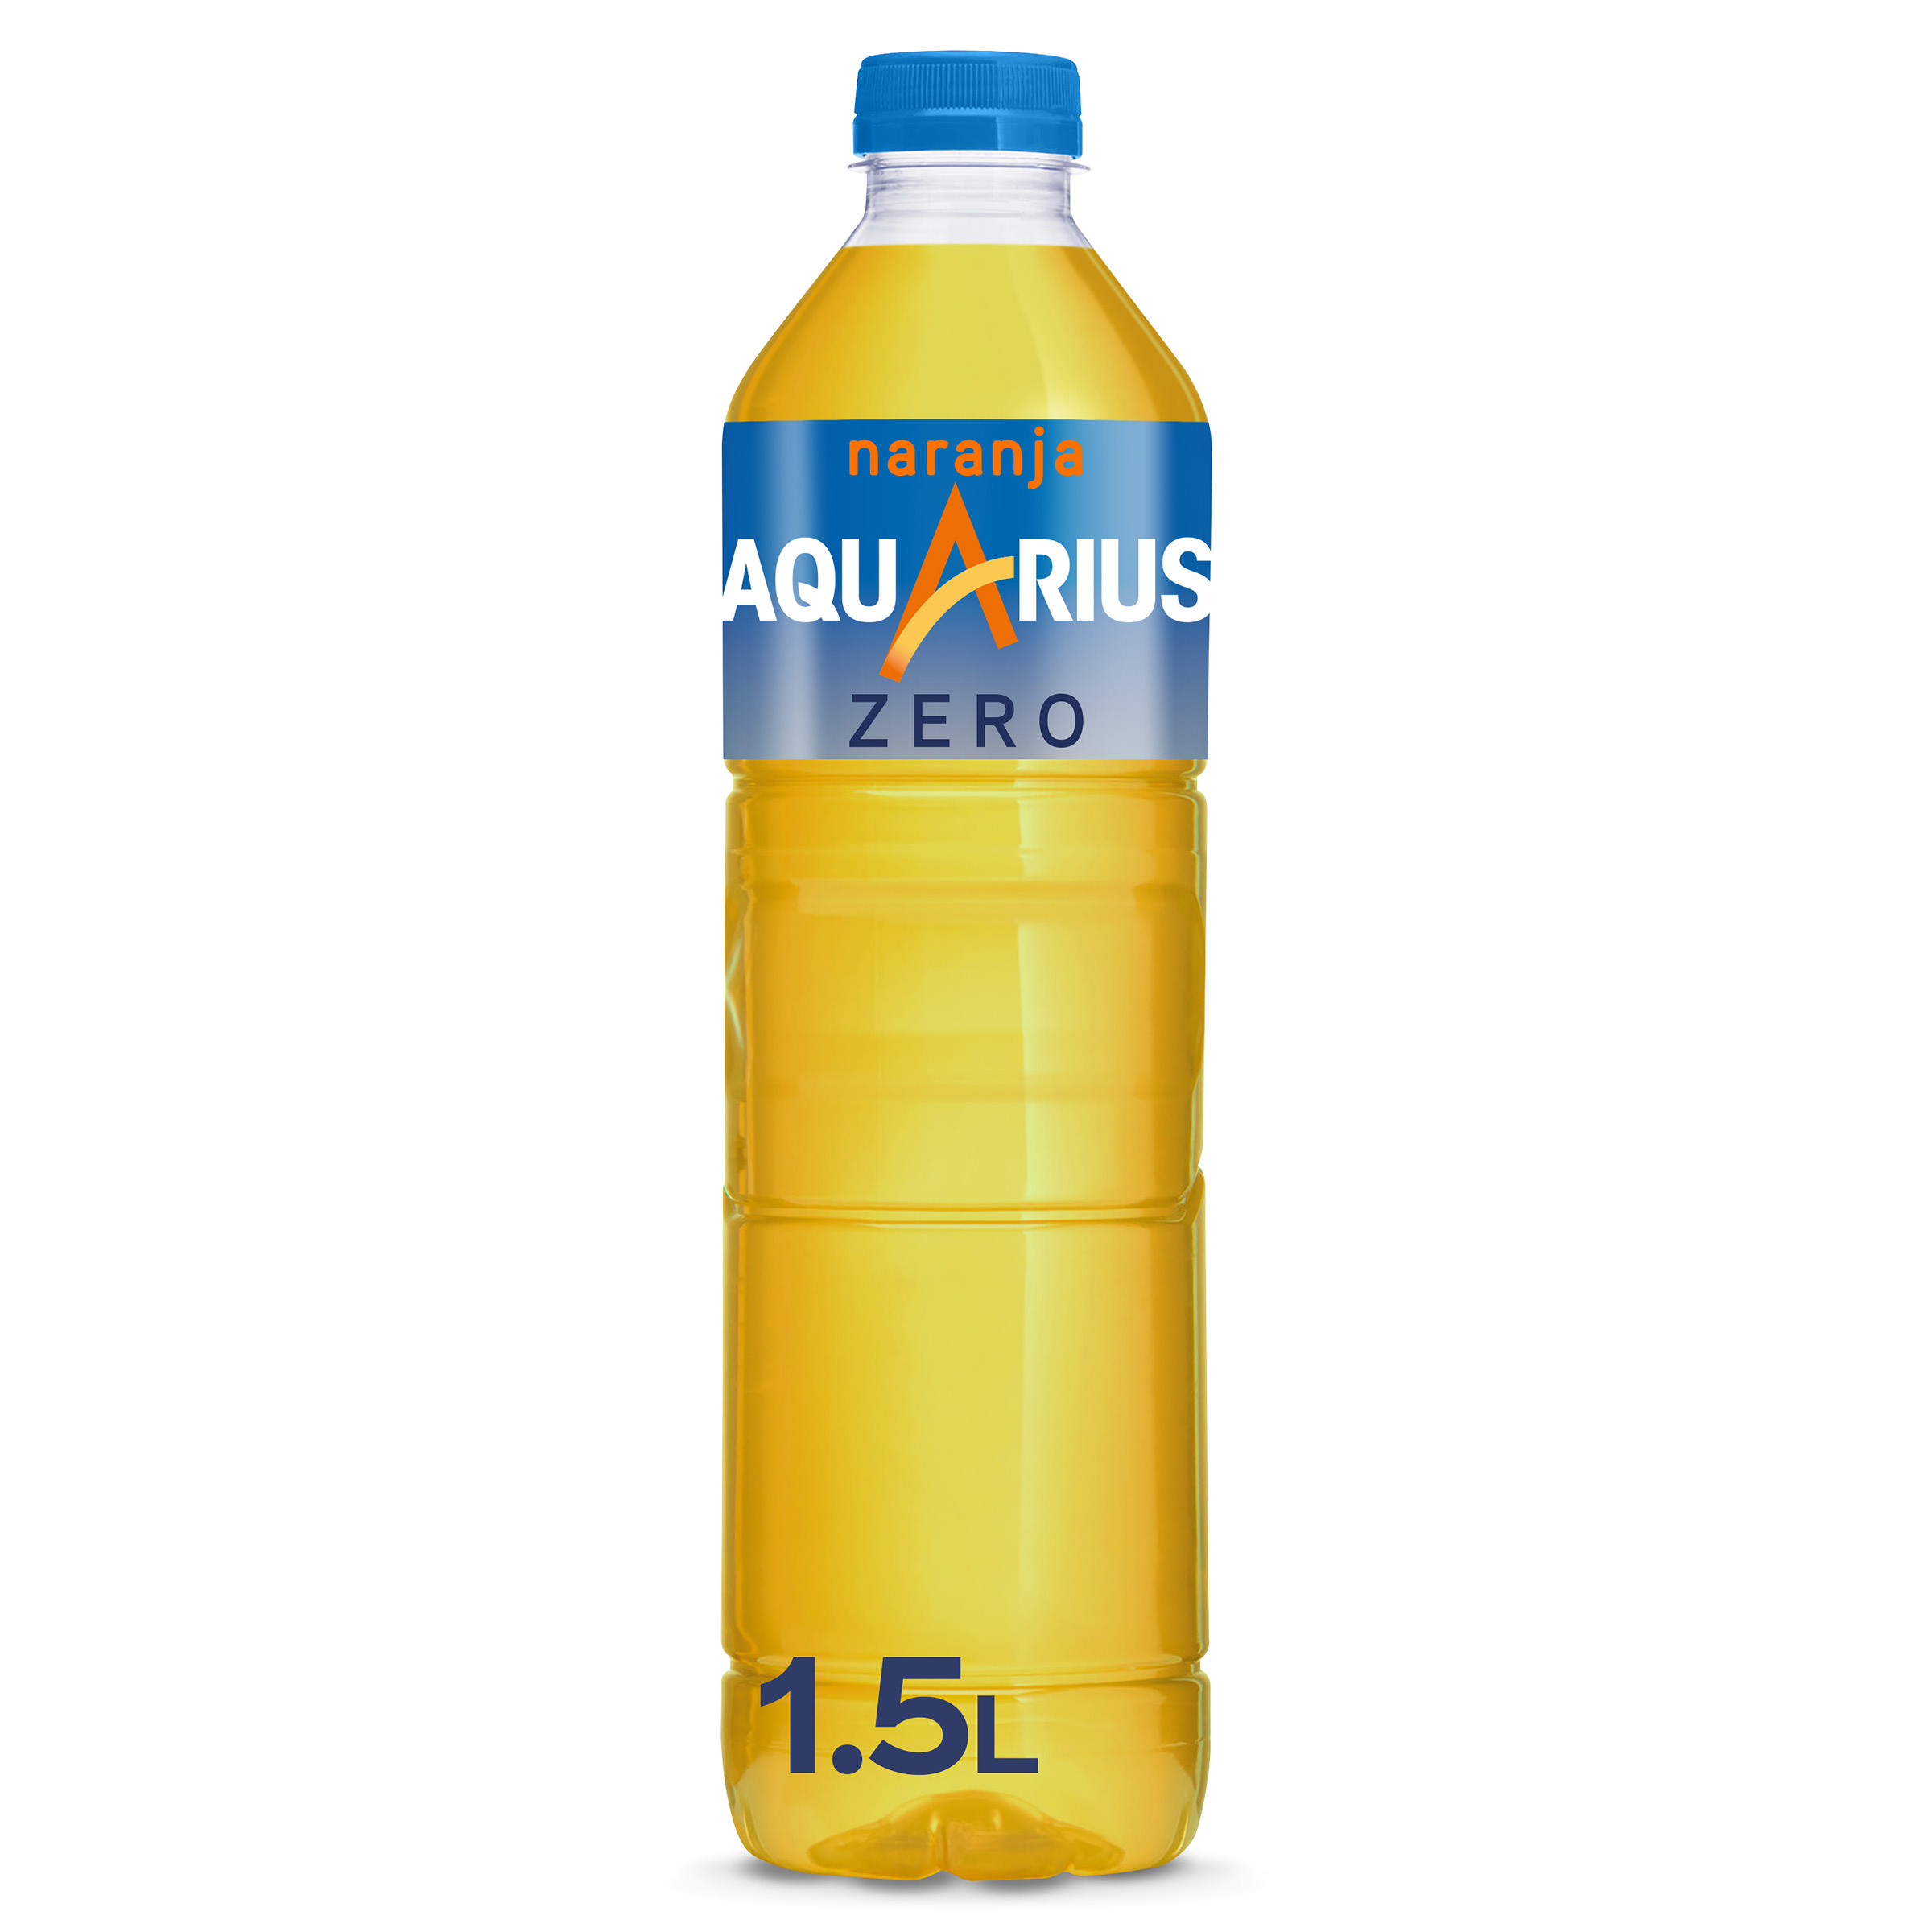 Aquarius bebida isotonica light naranja de 1,5l. en botella